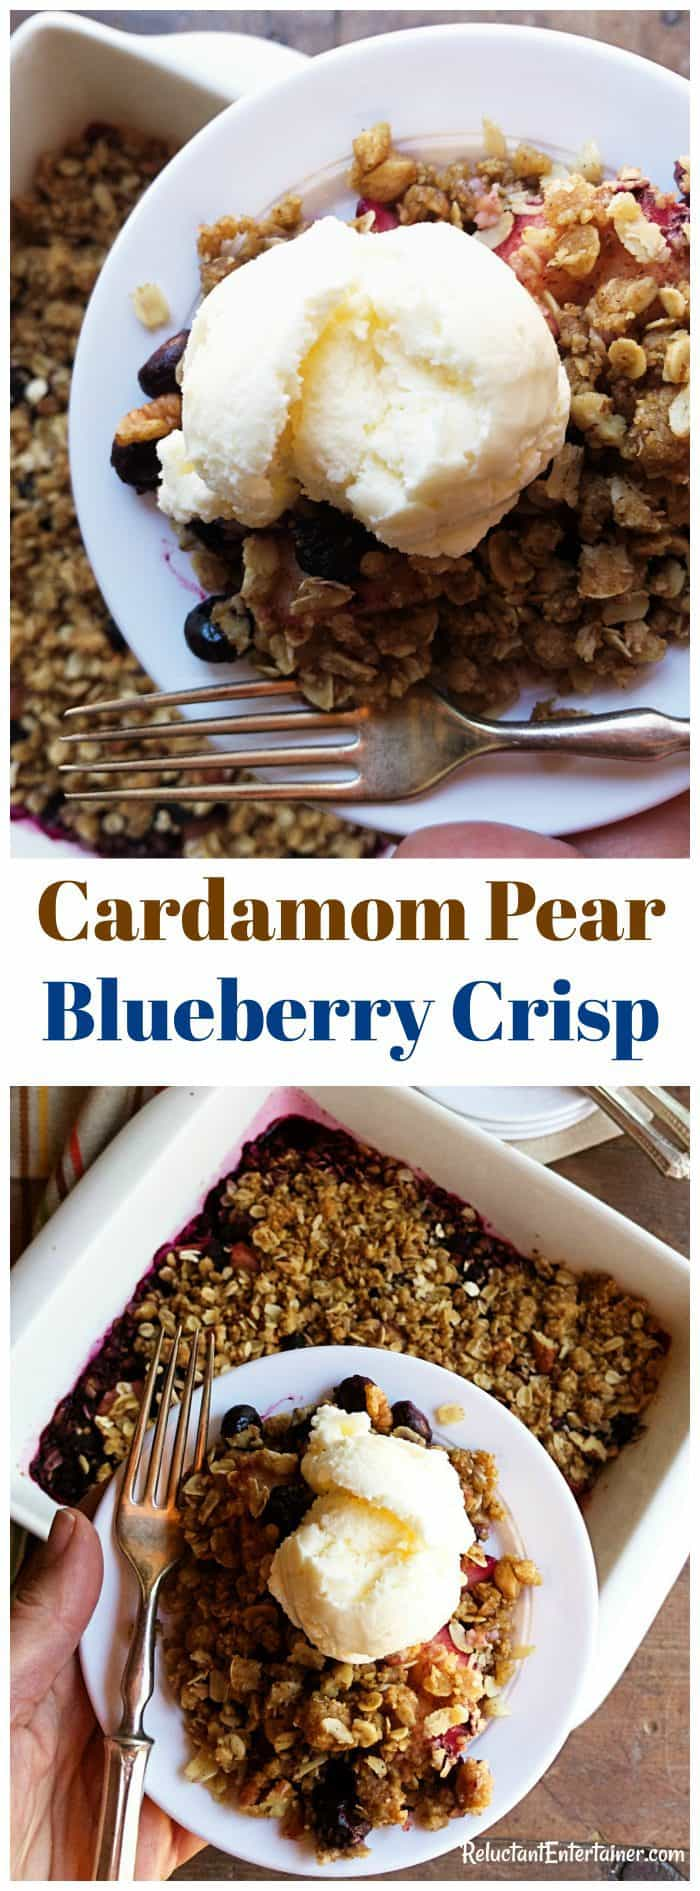 Cardamom Pear Blueberry Crisp